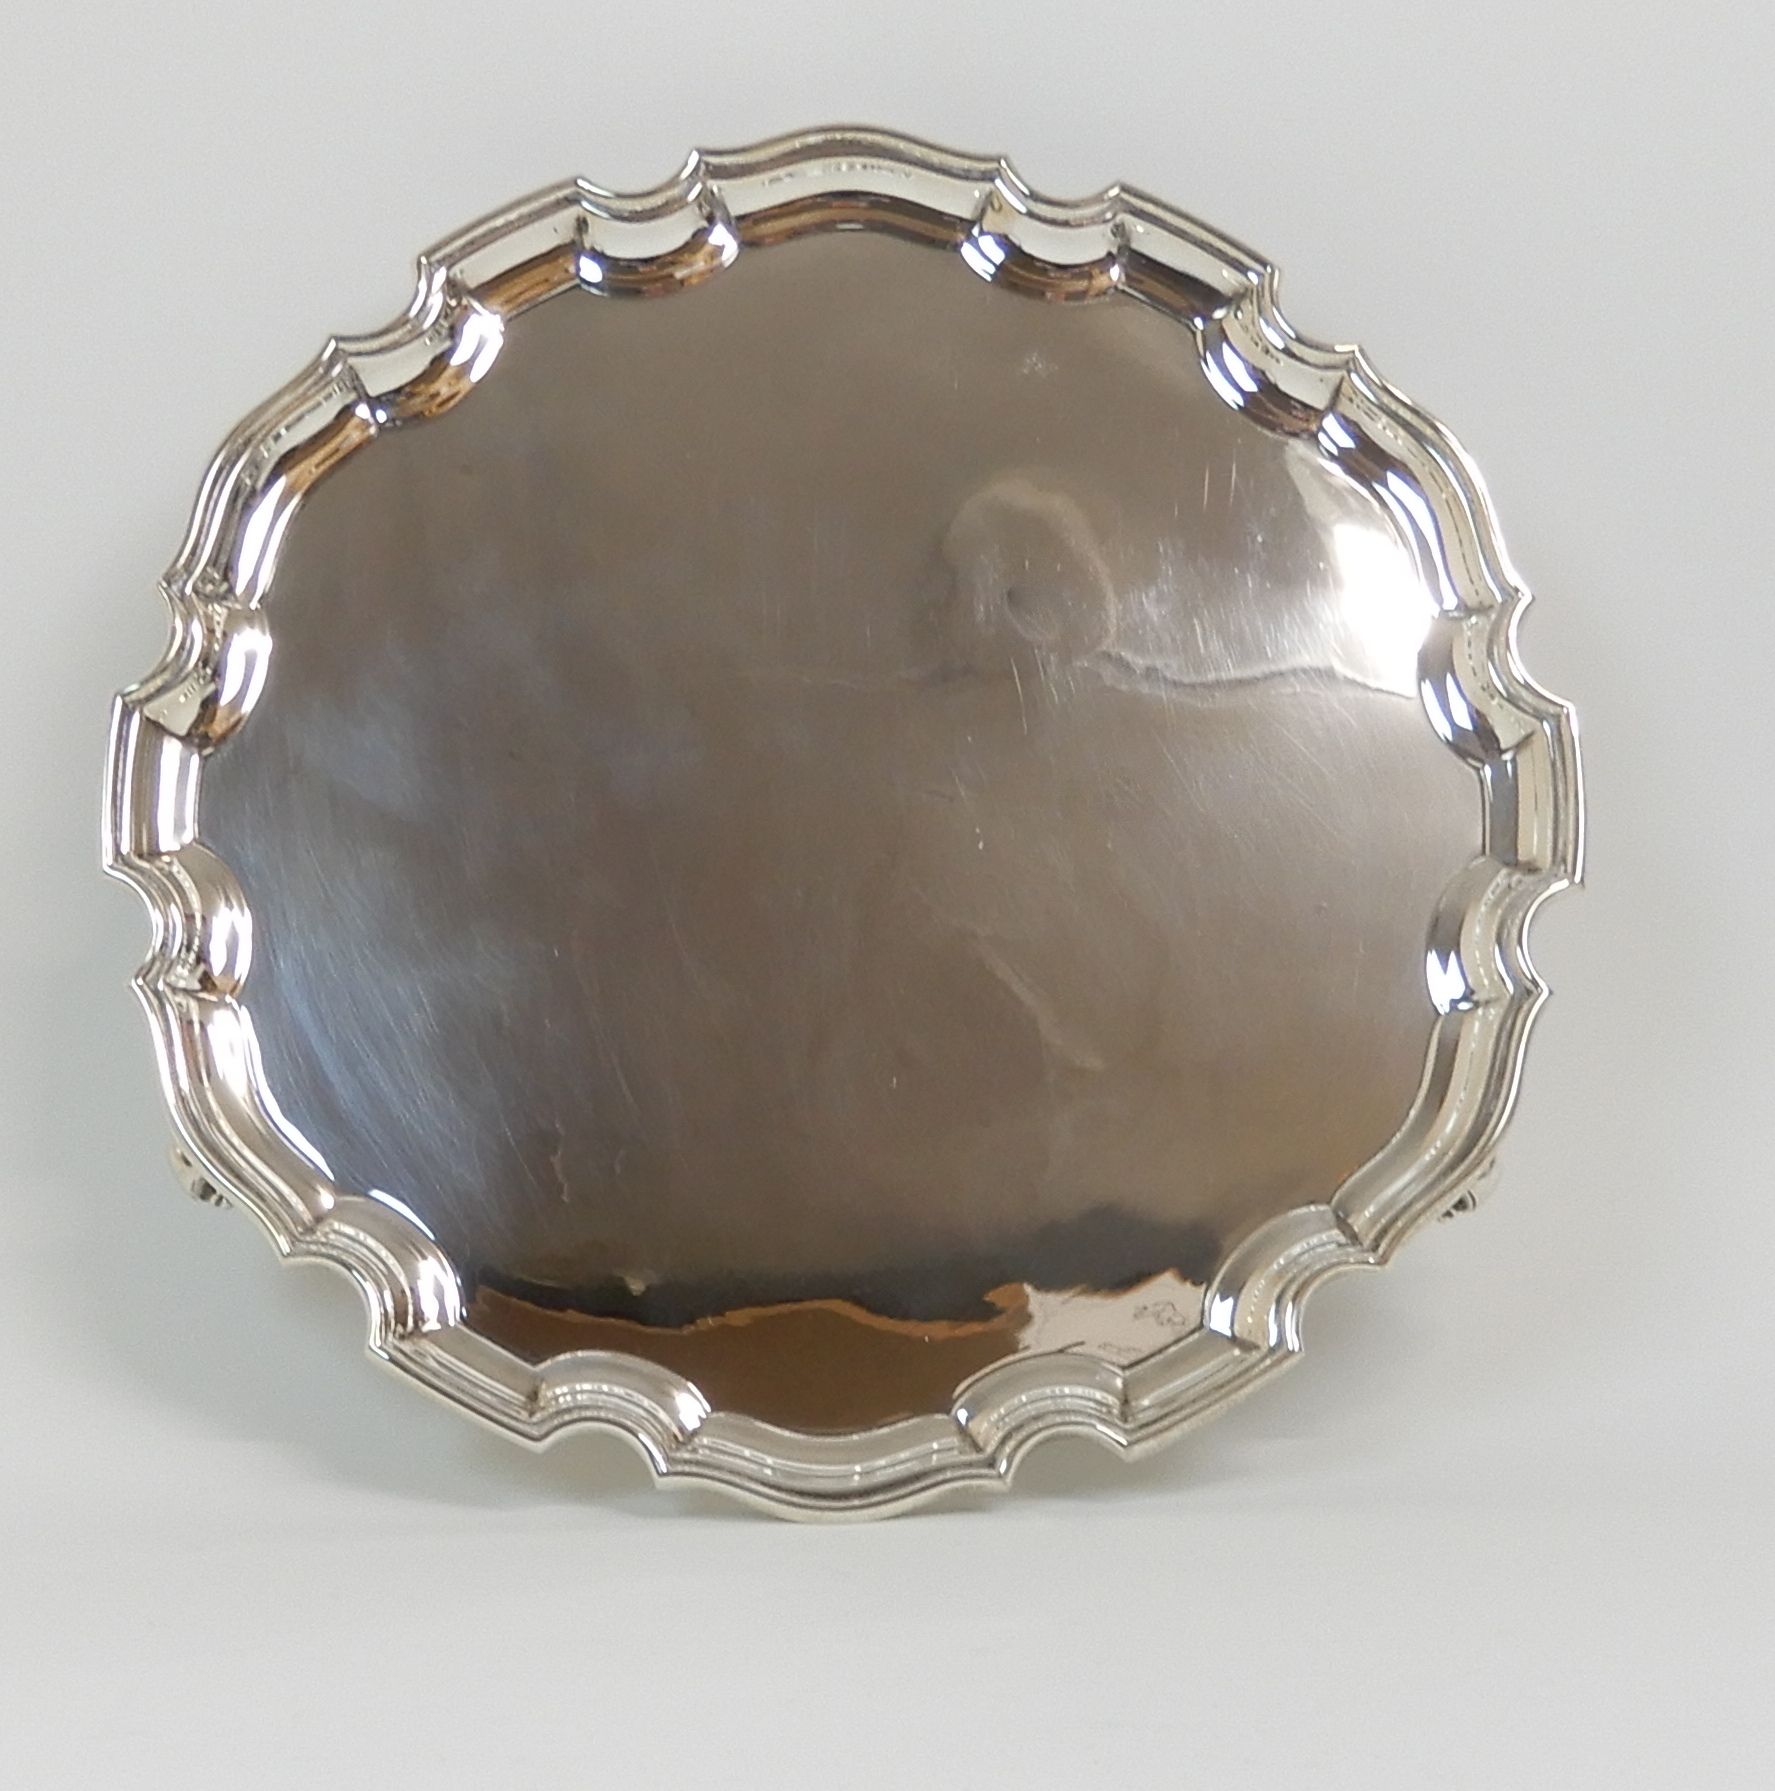 Lot 124 - A SILVER SALVER by Stower & Wragg Limited, Sheffield 1941, of circular form with raised scalloped